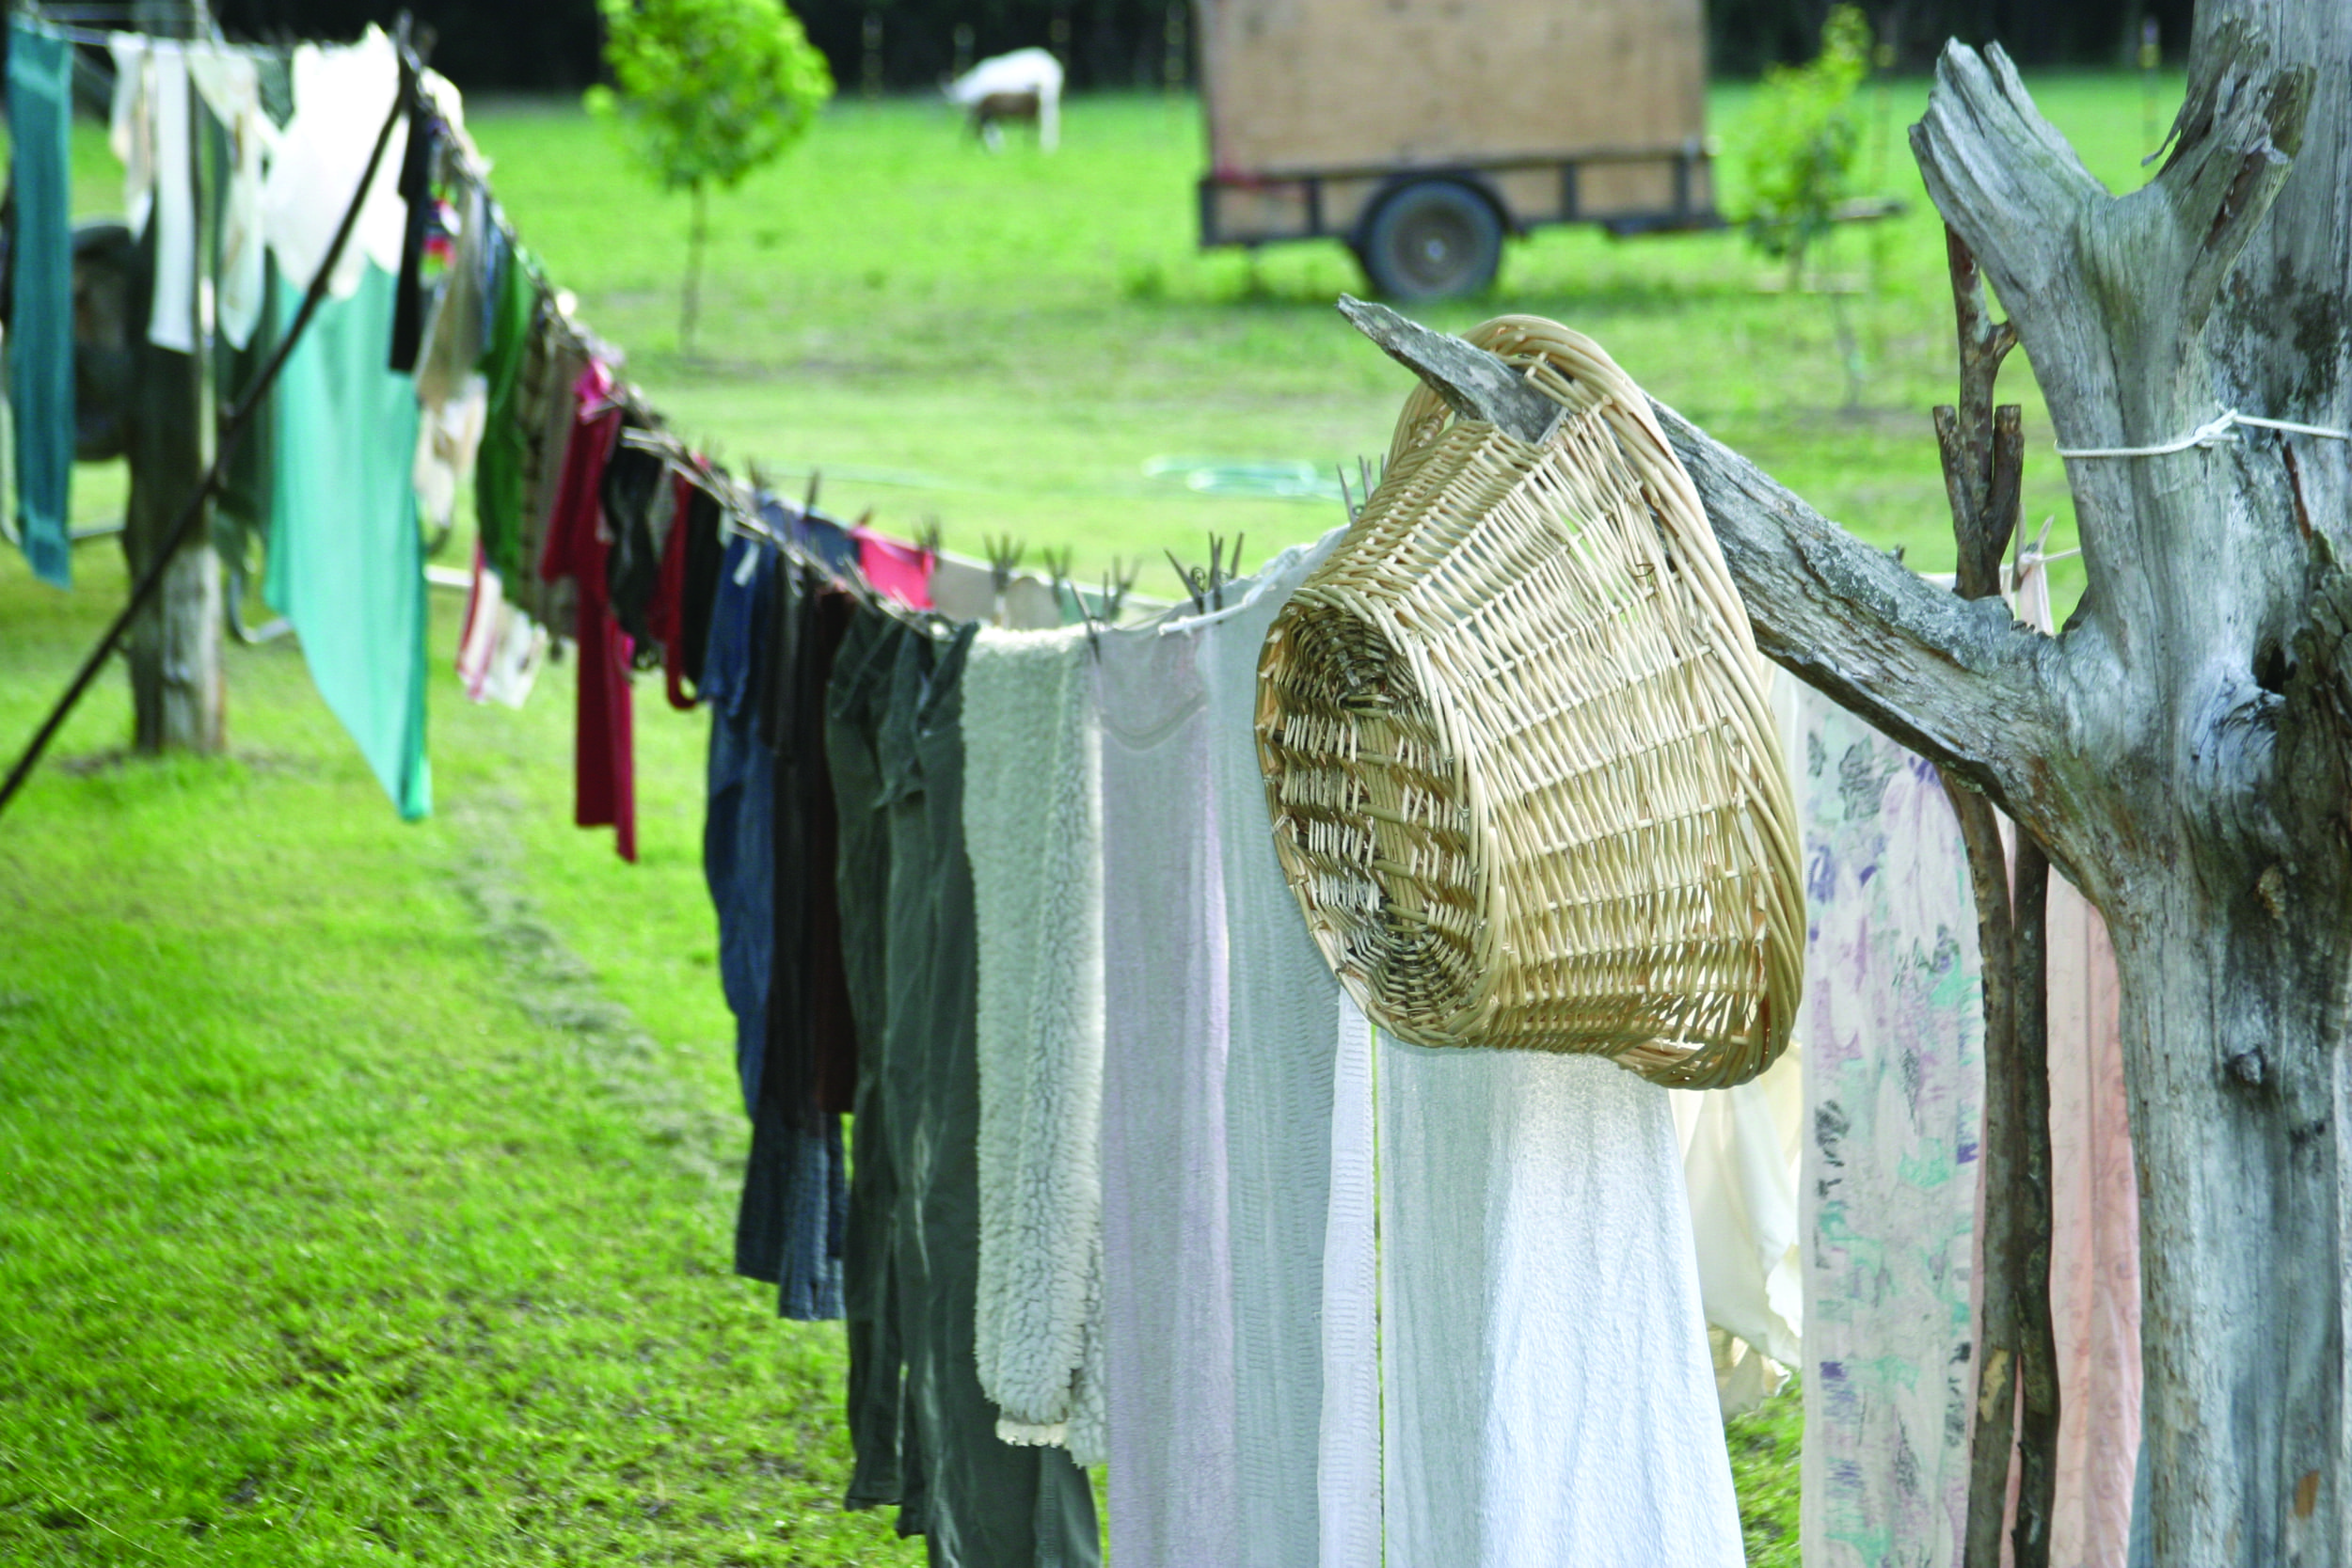 clothes line.jpg